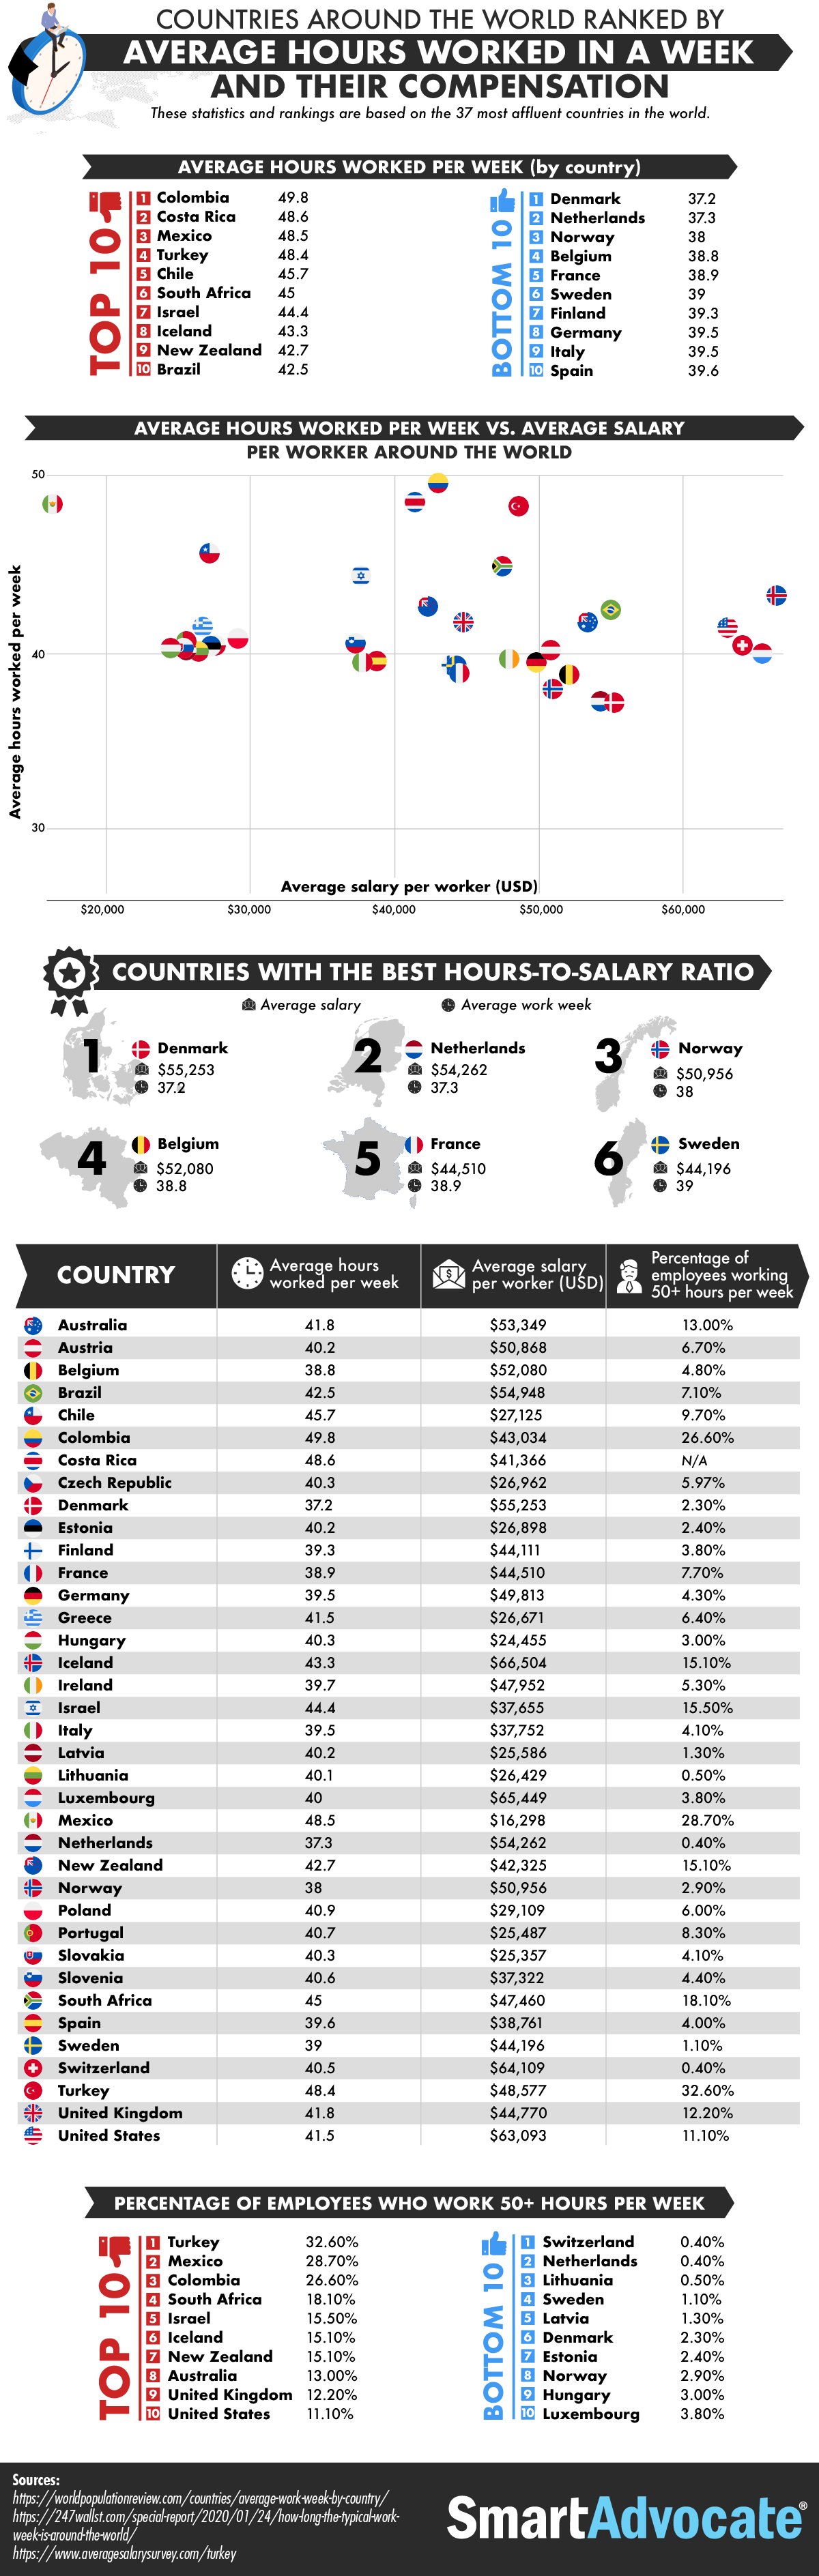 Countries Around the World Ranked by Average Hours Worked in a Week and Their Compensation #infographic